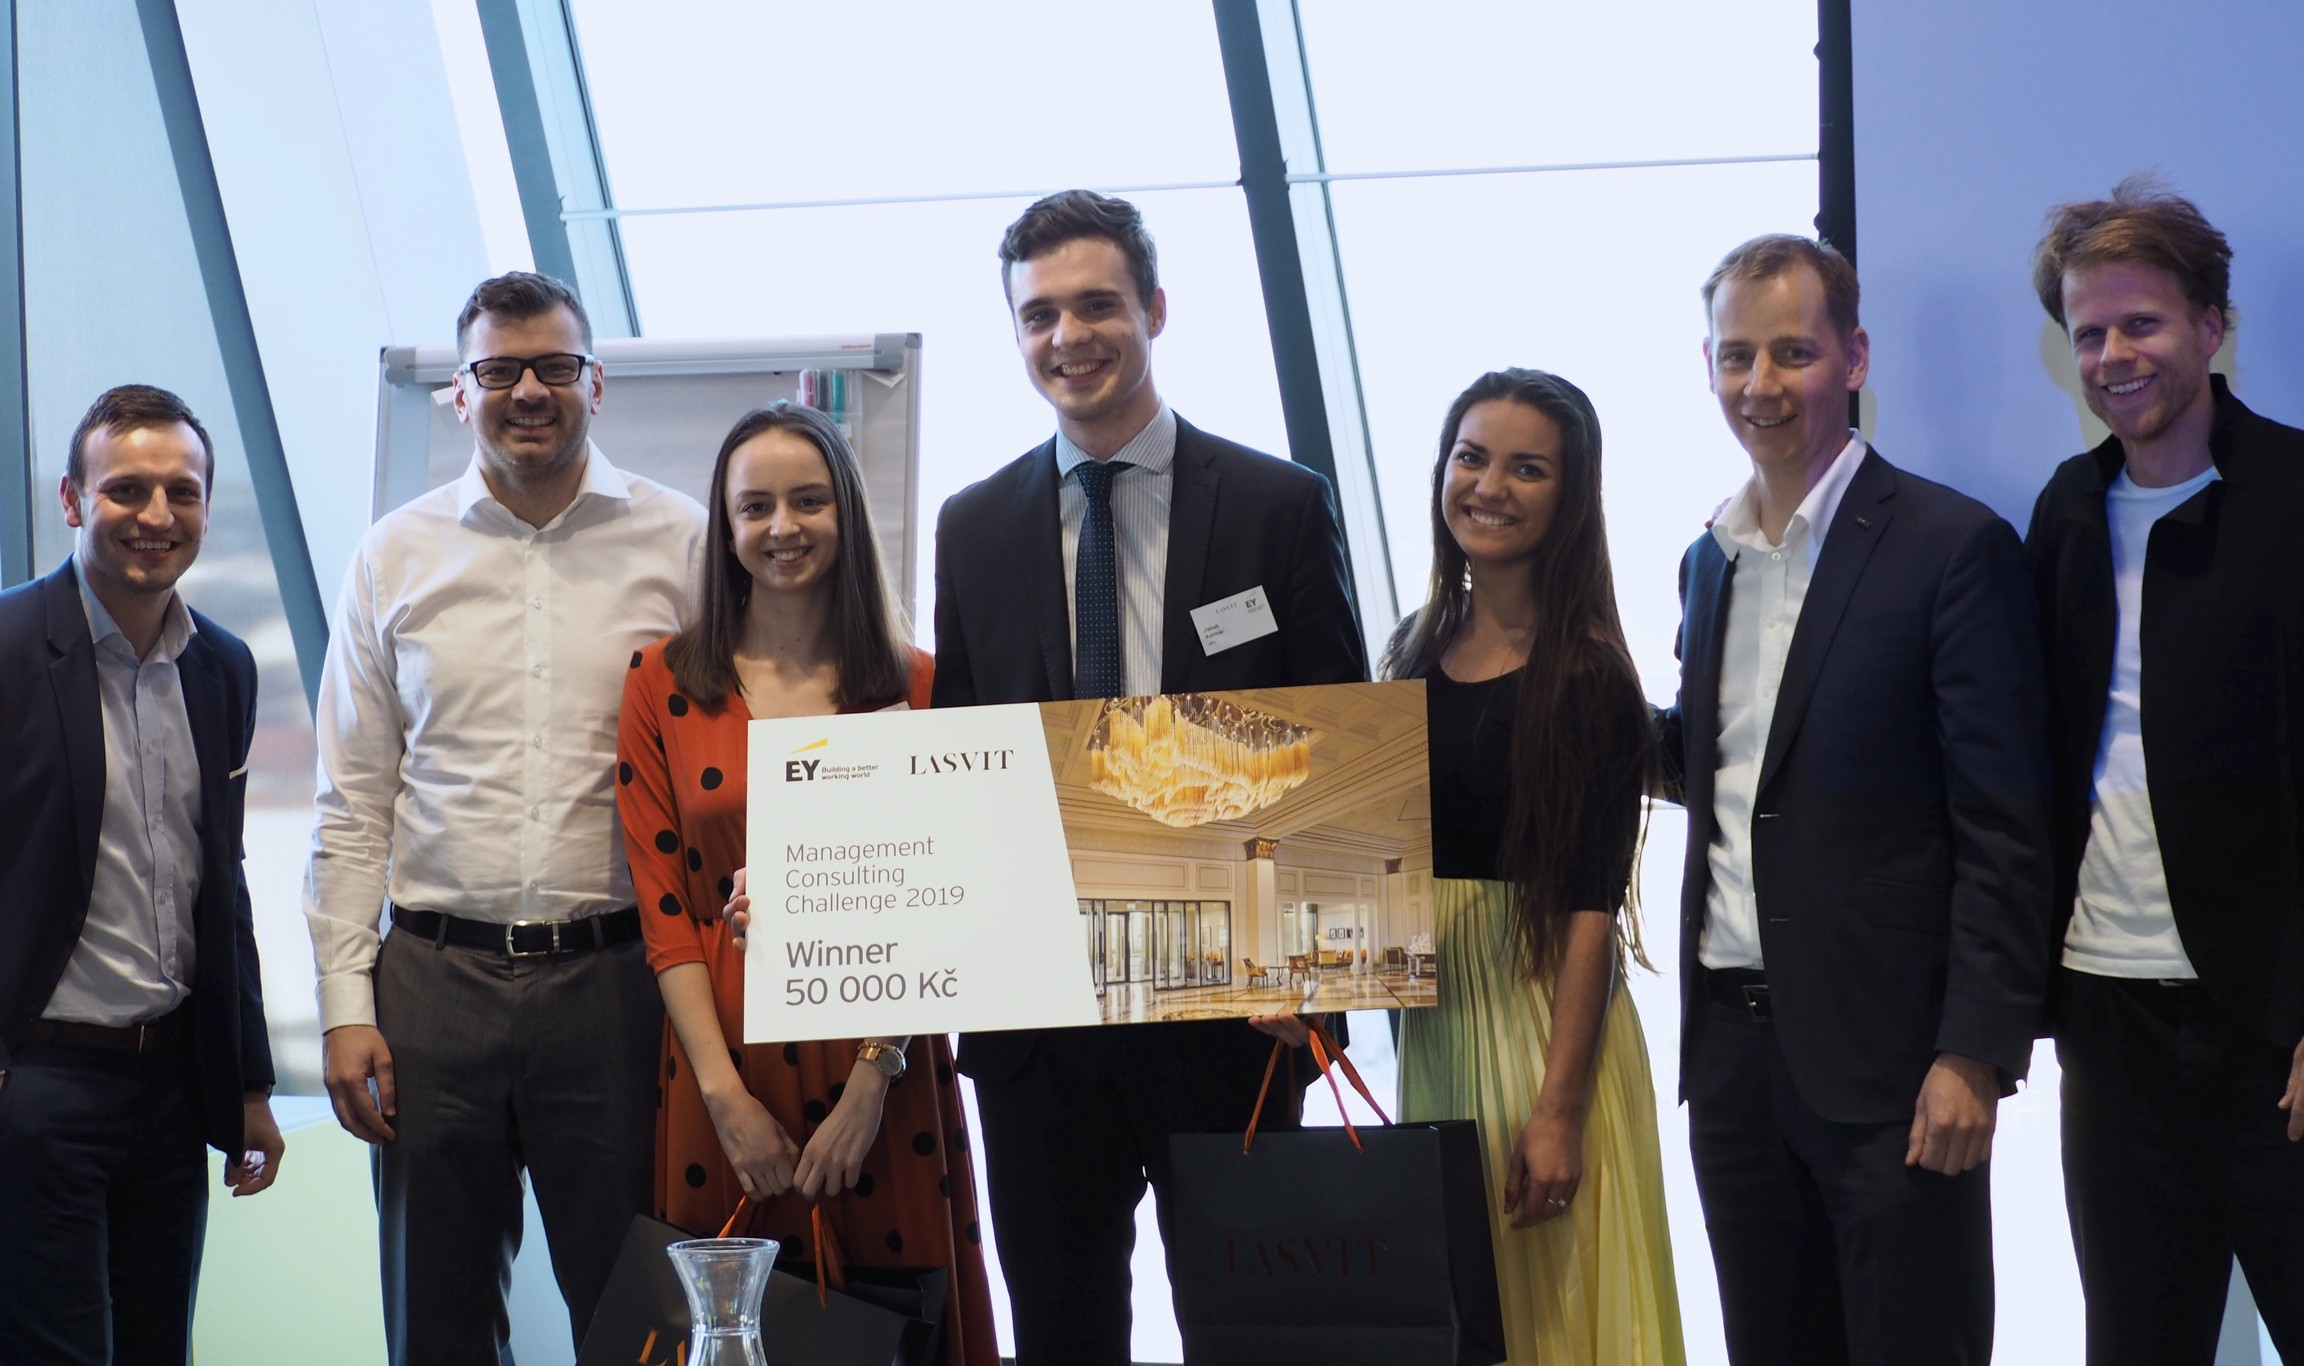 FIR team won Management Consulting Challenge 2019 – Faculty